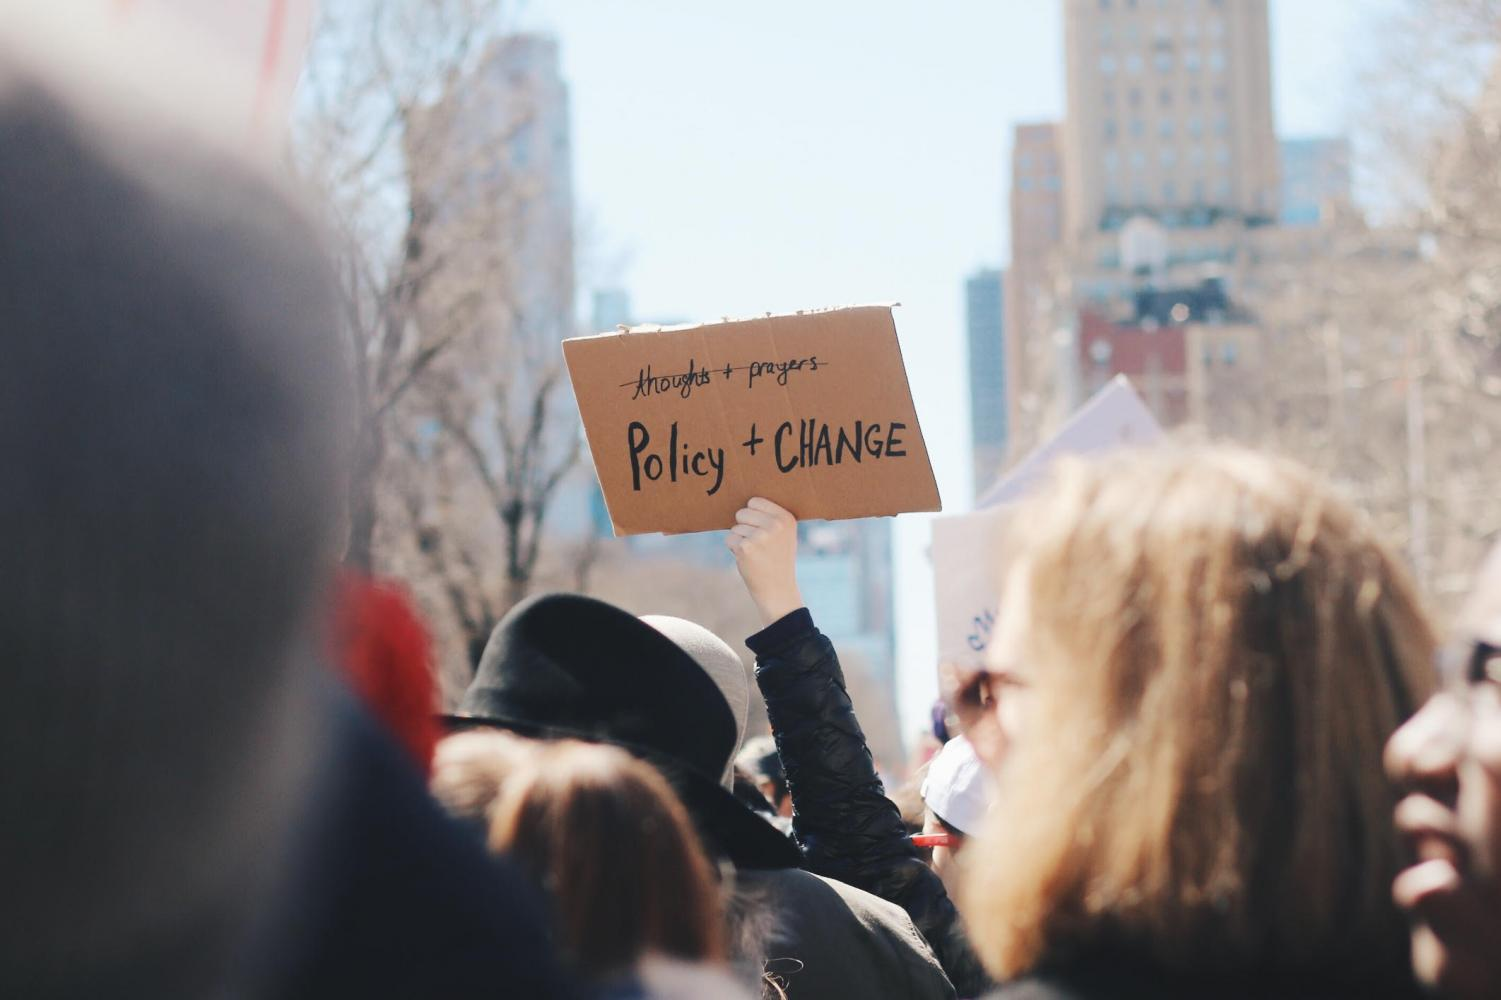 March For Our Lives NYC drew about 175,000 protestors on March 24.